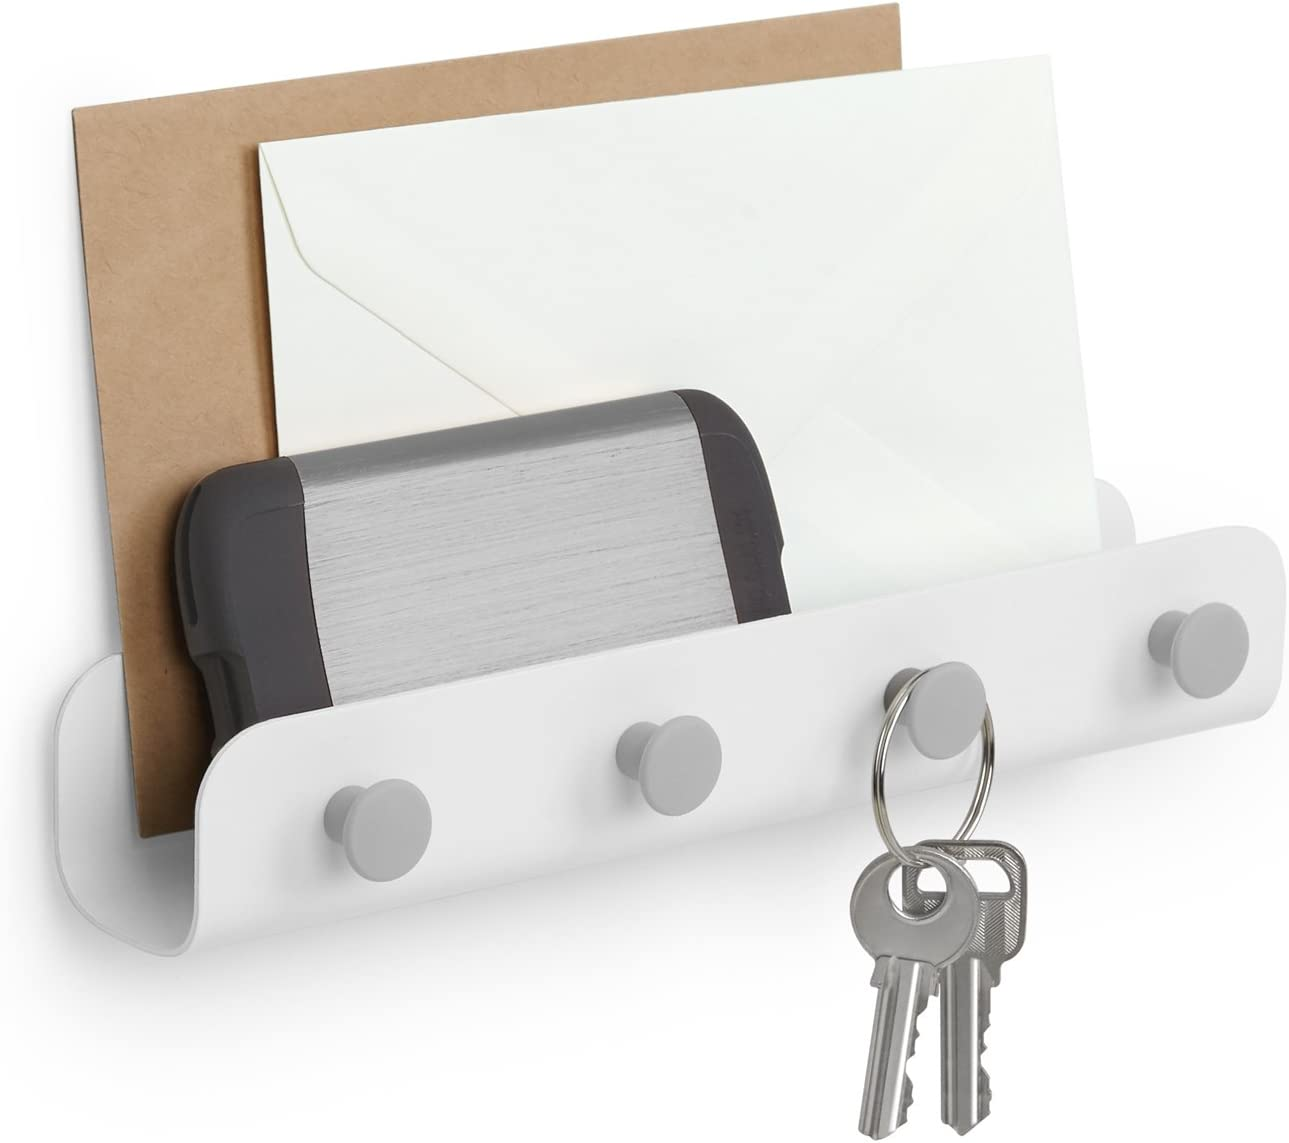 Phones and Chargers Made of Steel Mail Great for Storing Keys Umbra Yook Organizer White//Gray Compact Organizer with Hooks Wallets